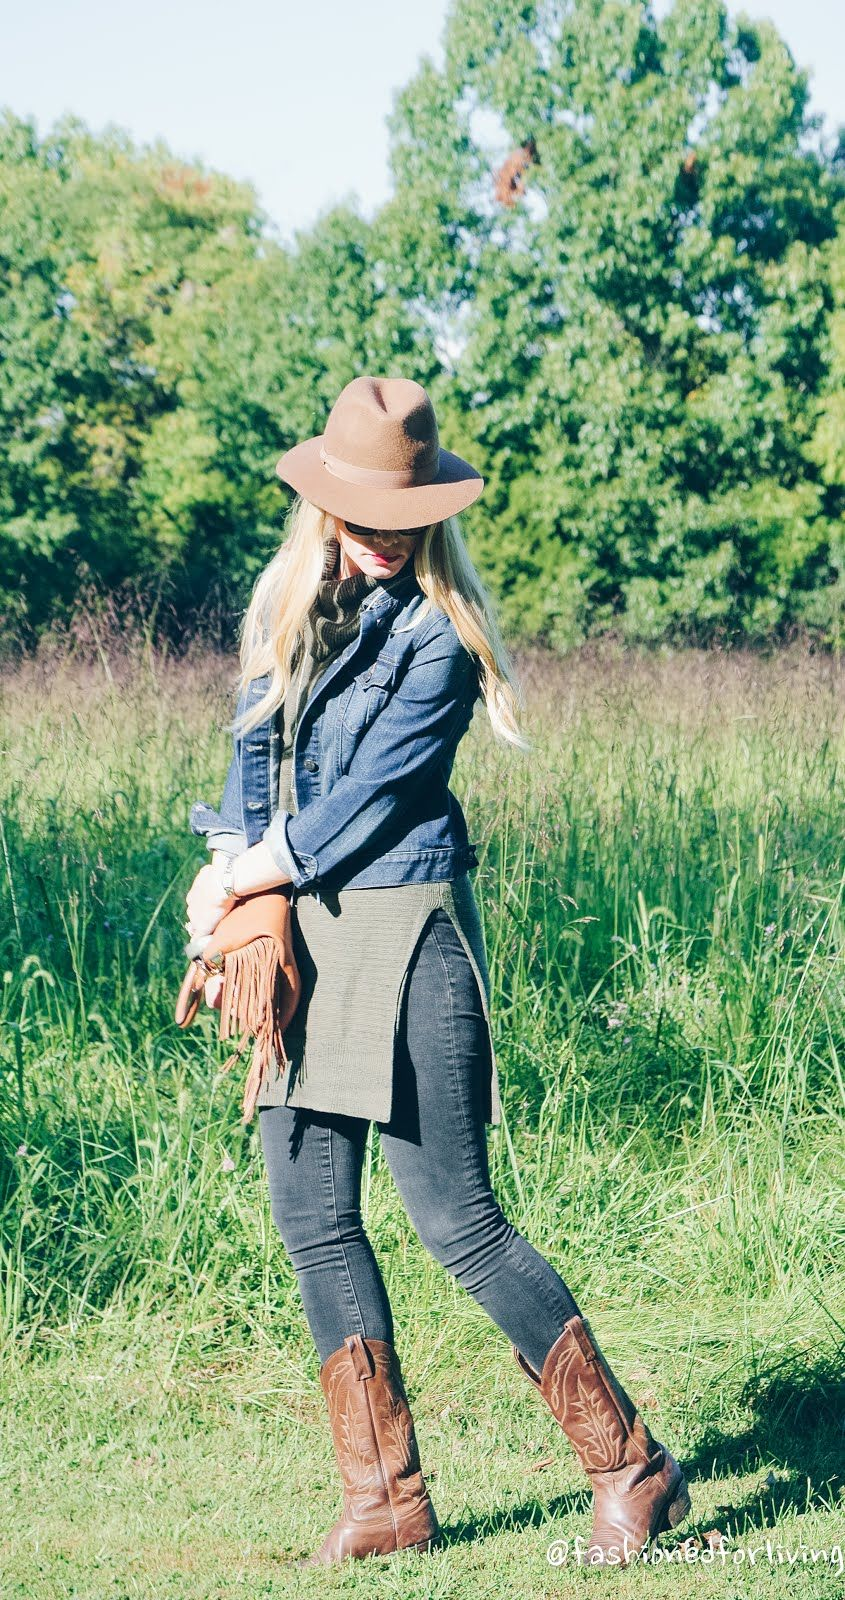 Olive Sleeveless Tunic With Denim Jacket Black Skinny Jeans And Cowboy Boots Fall Outfit Winter Outfits Denim Jacket Winter Casual Winter Outfits [ 1600 x 845 Pixel ]